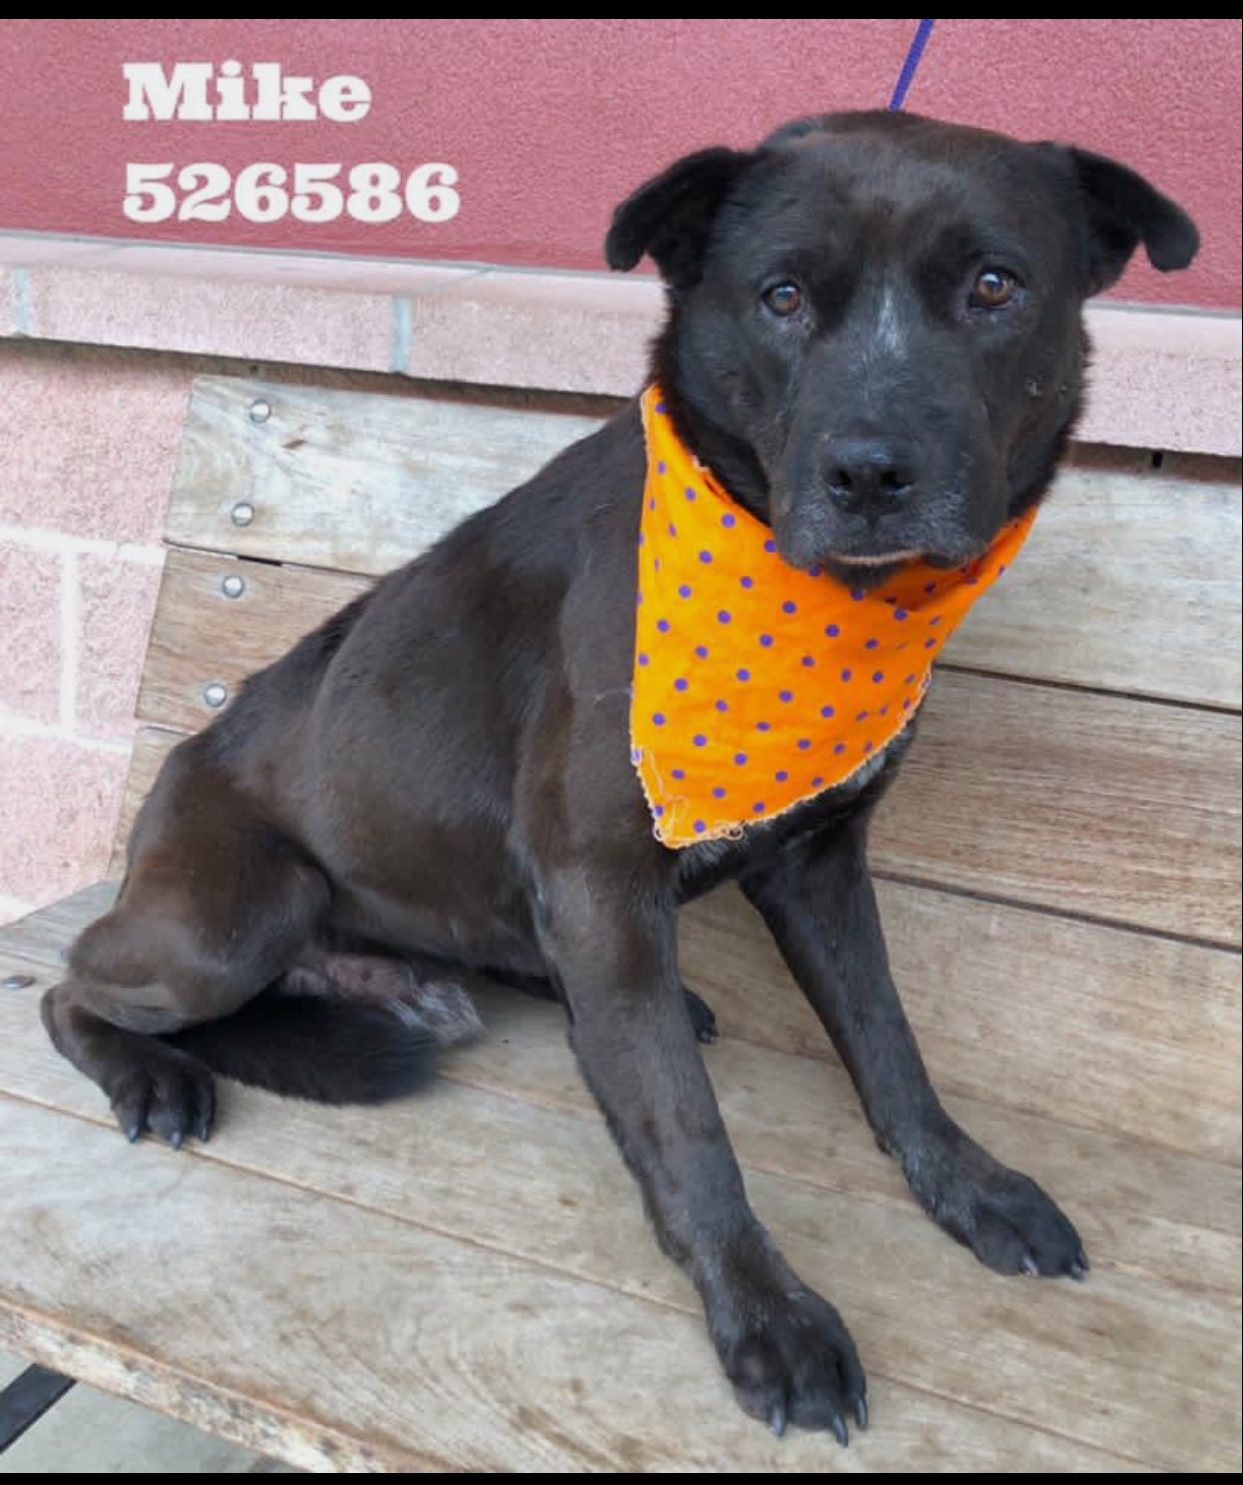 <UL> Mike <LI> Breed: Lab mix <LI> Sex: Male <LI> Age: 2 yrs old <LI> Fee: $225